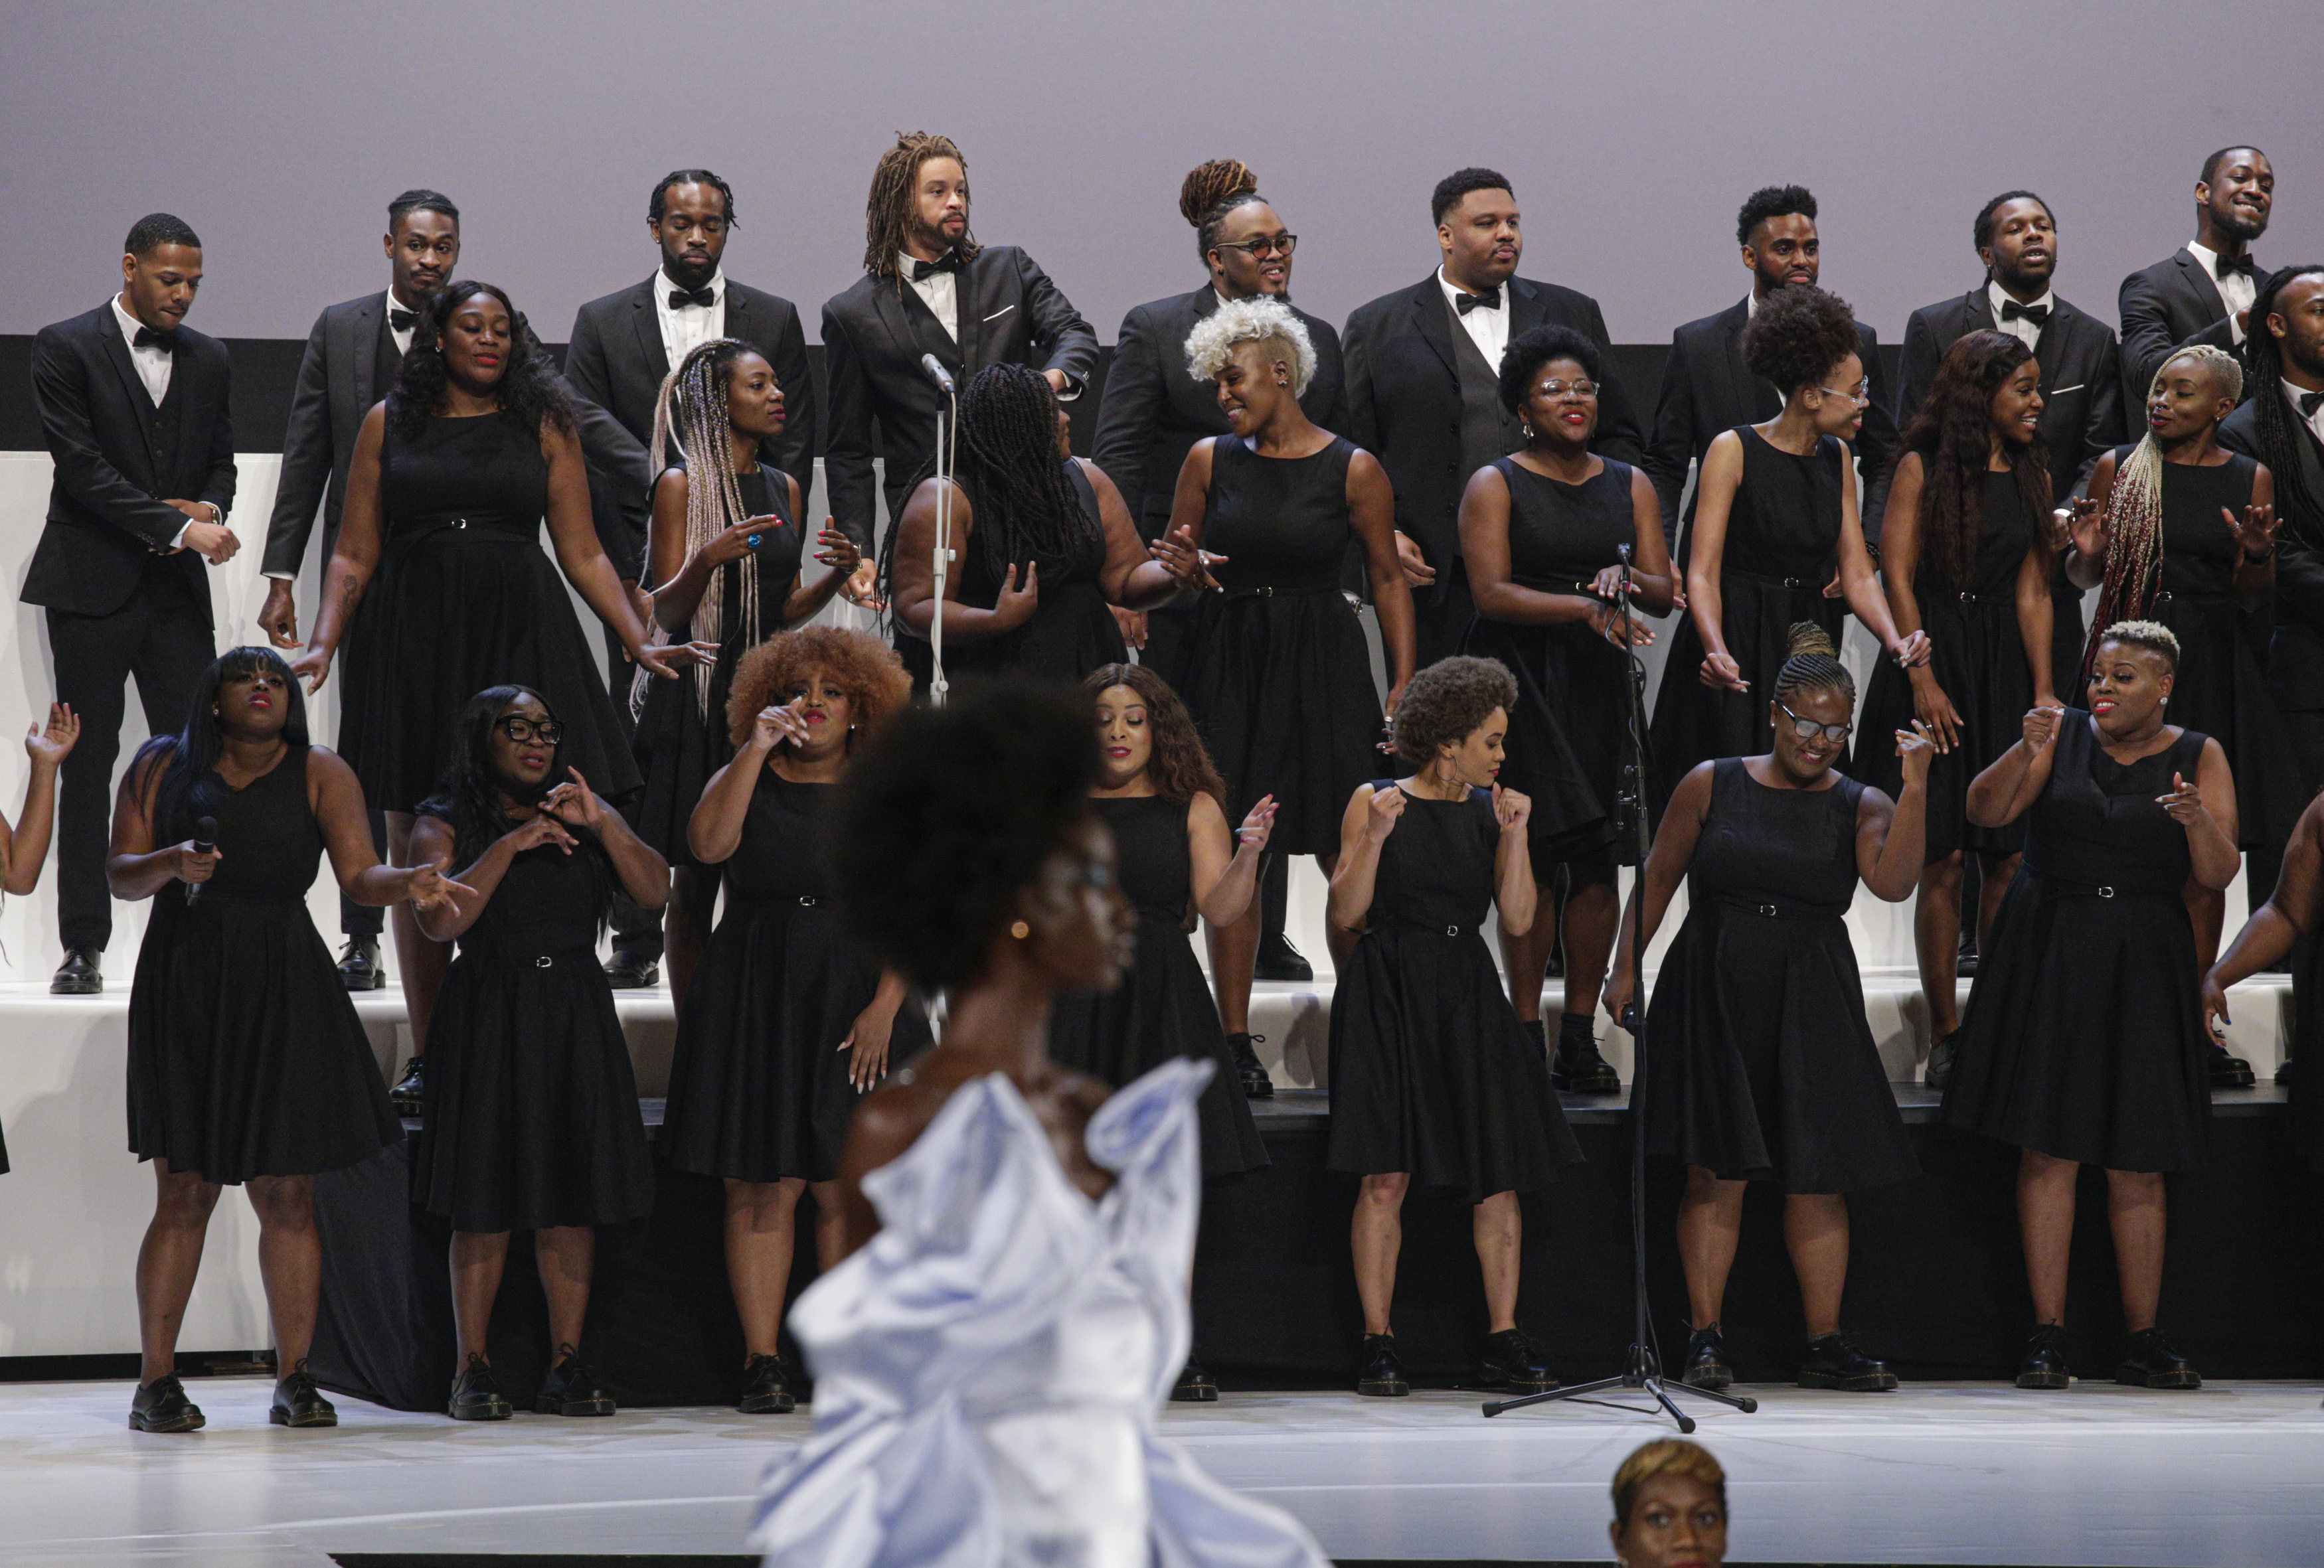 A choir of women in black dresses and men in black tuxes sing and dance during the Pyer Moss show